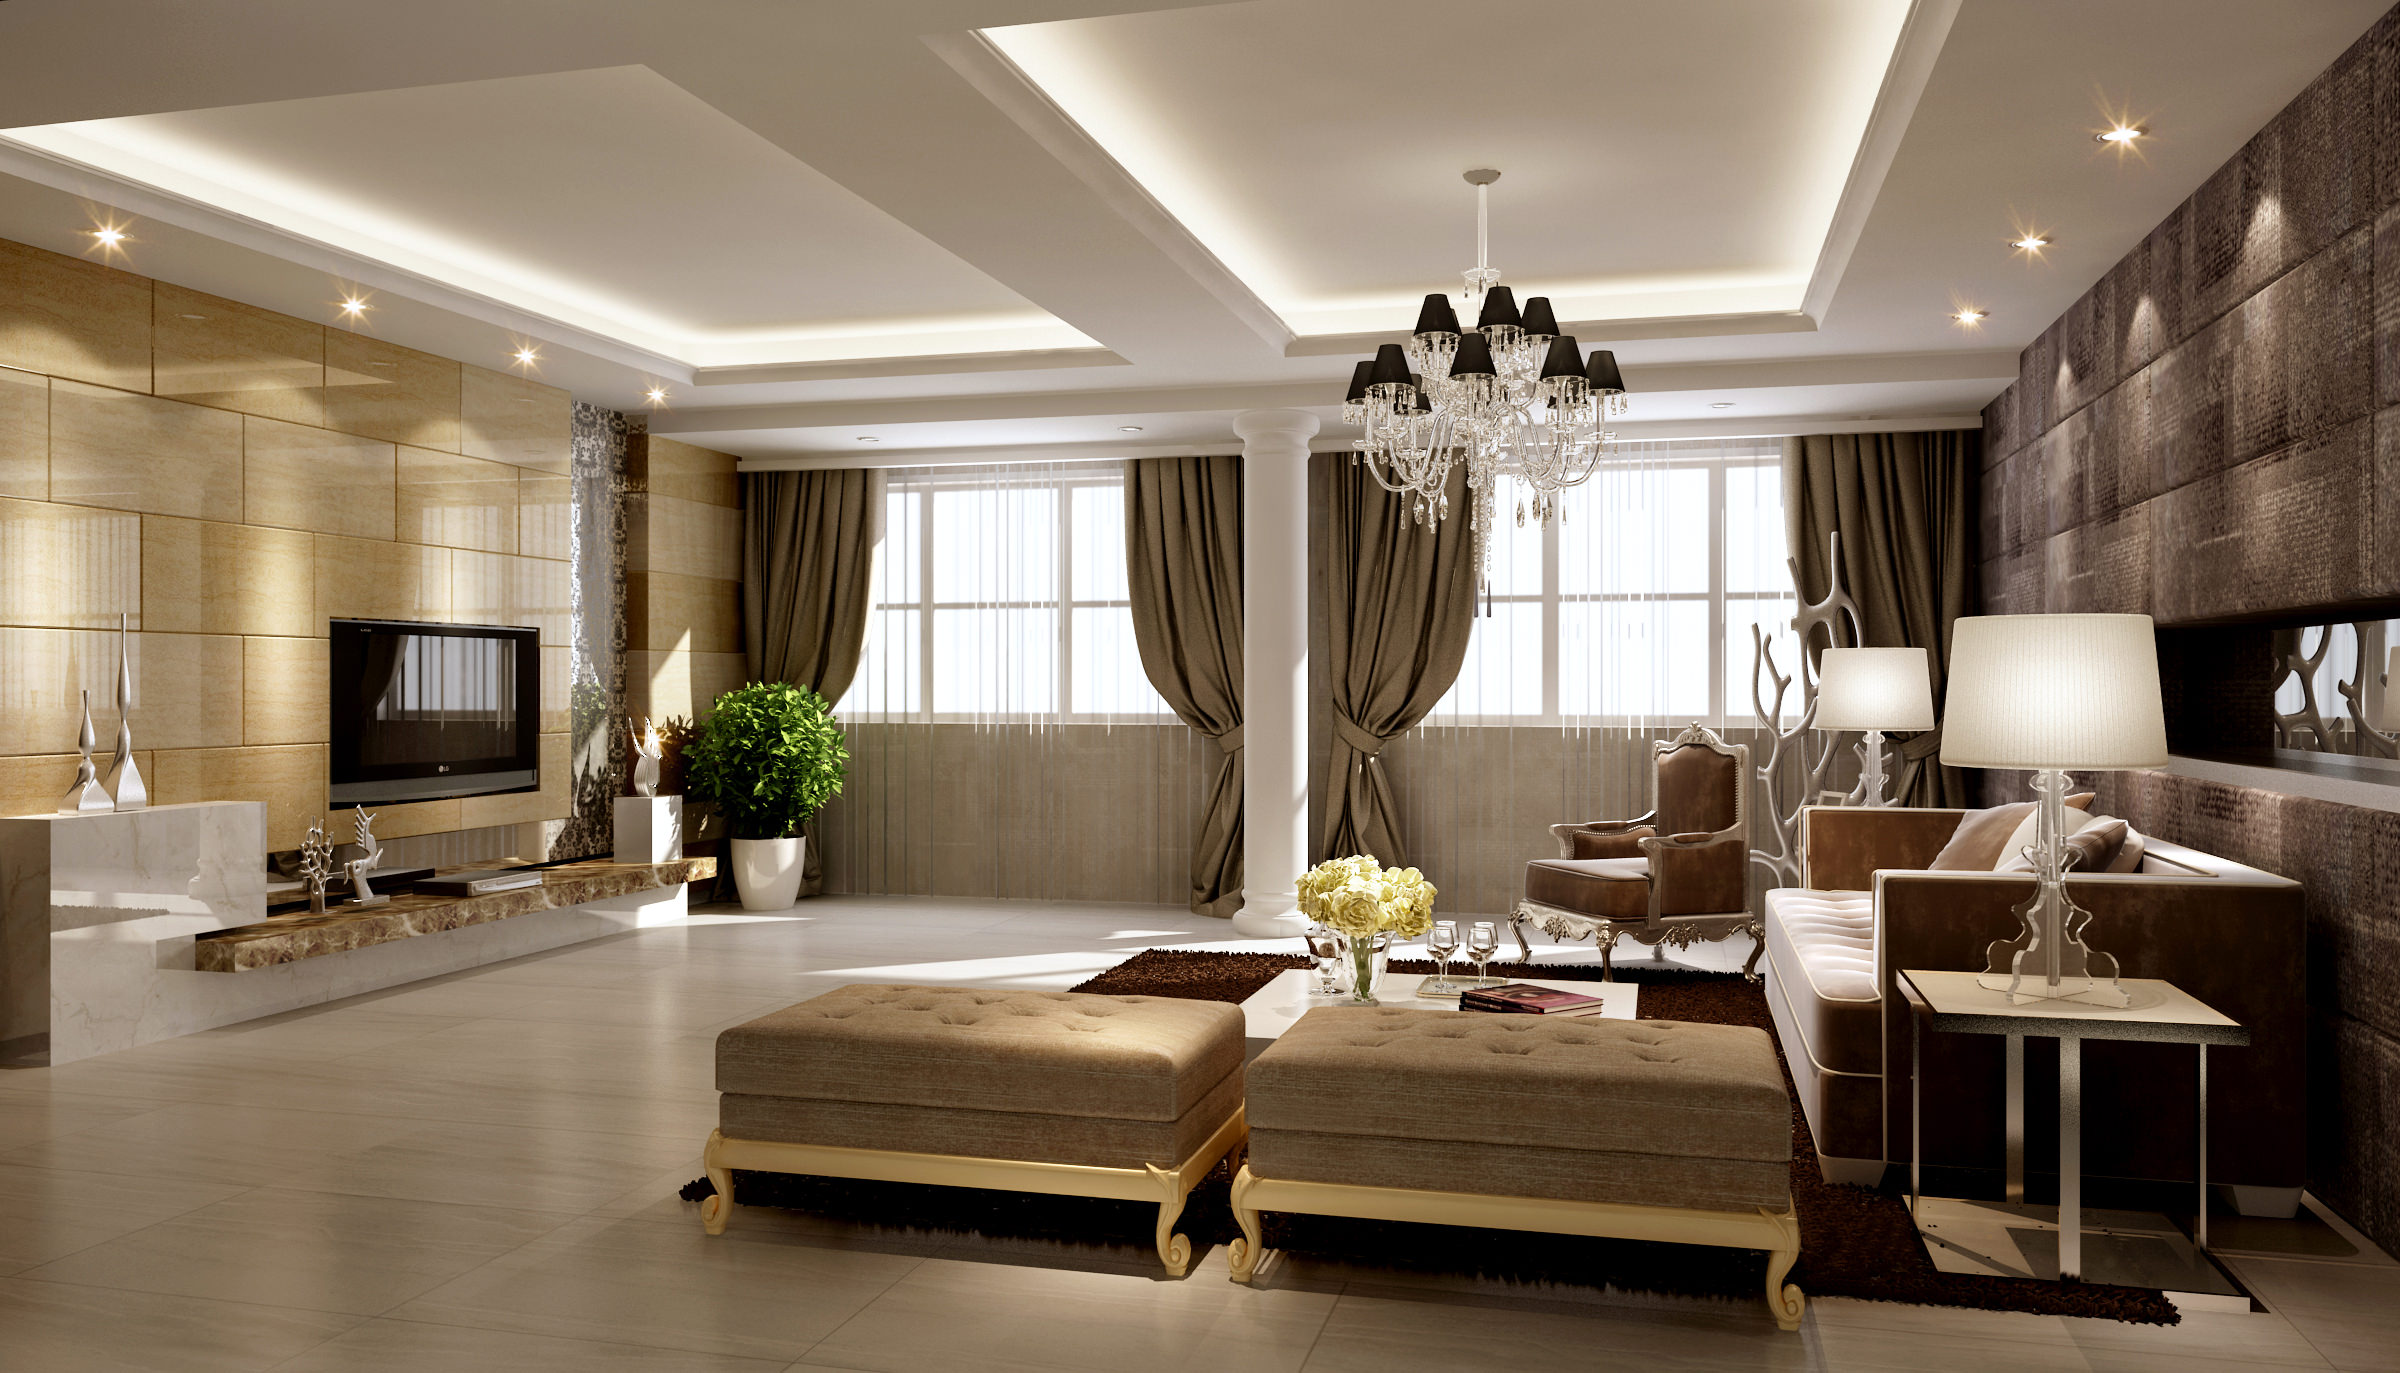 Beautiful ... Collection Living Room And Bedroom Collection 3d Model Max 8 ...